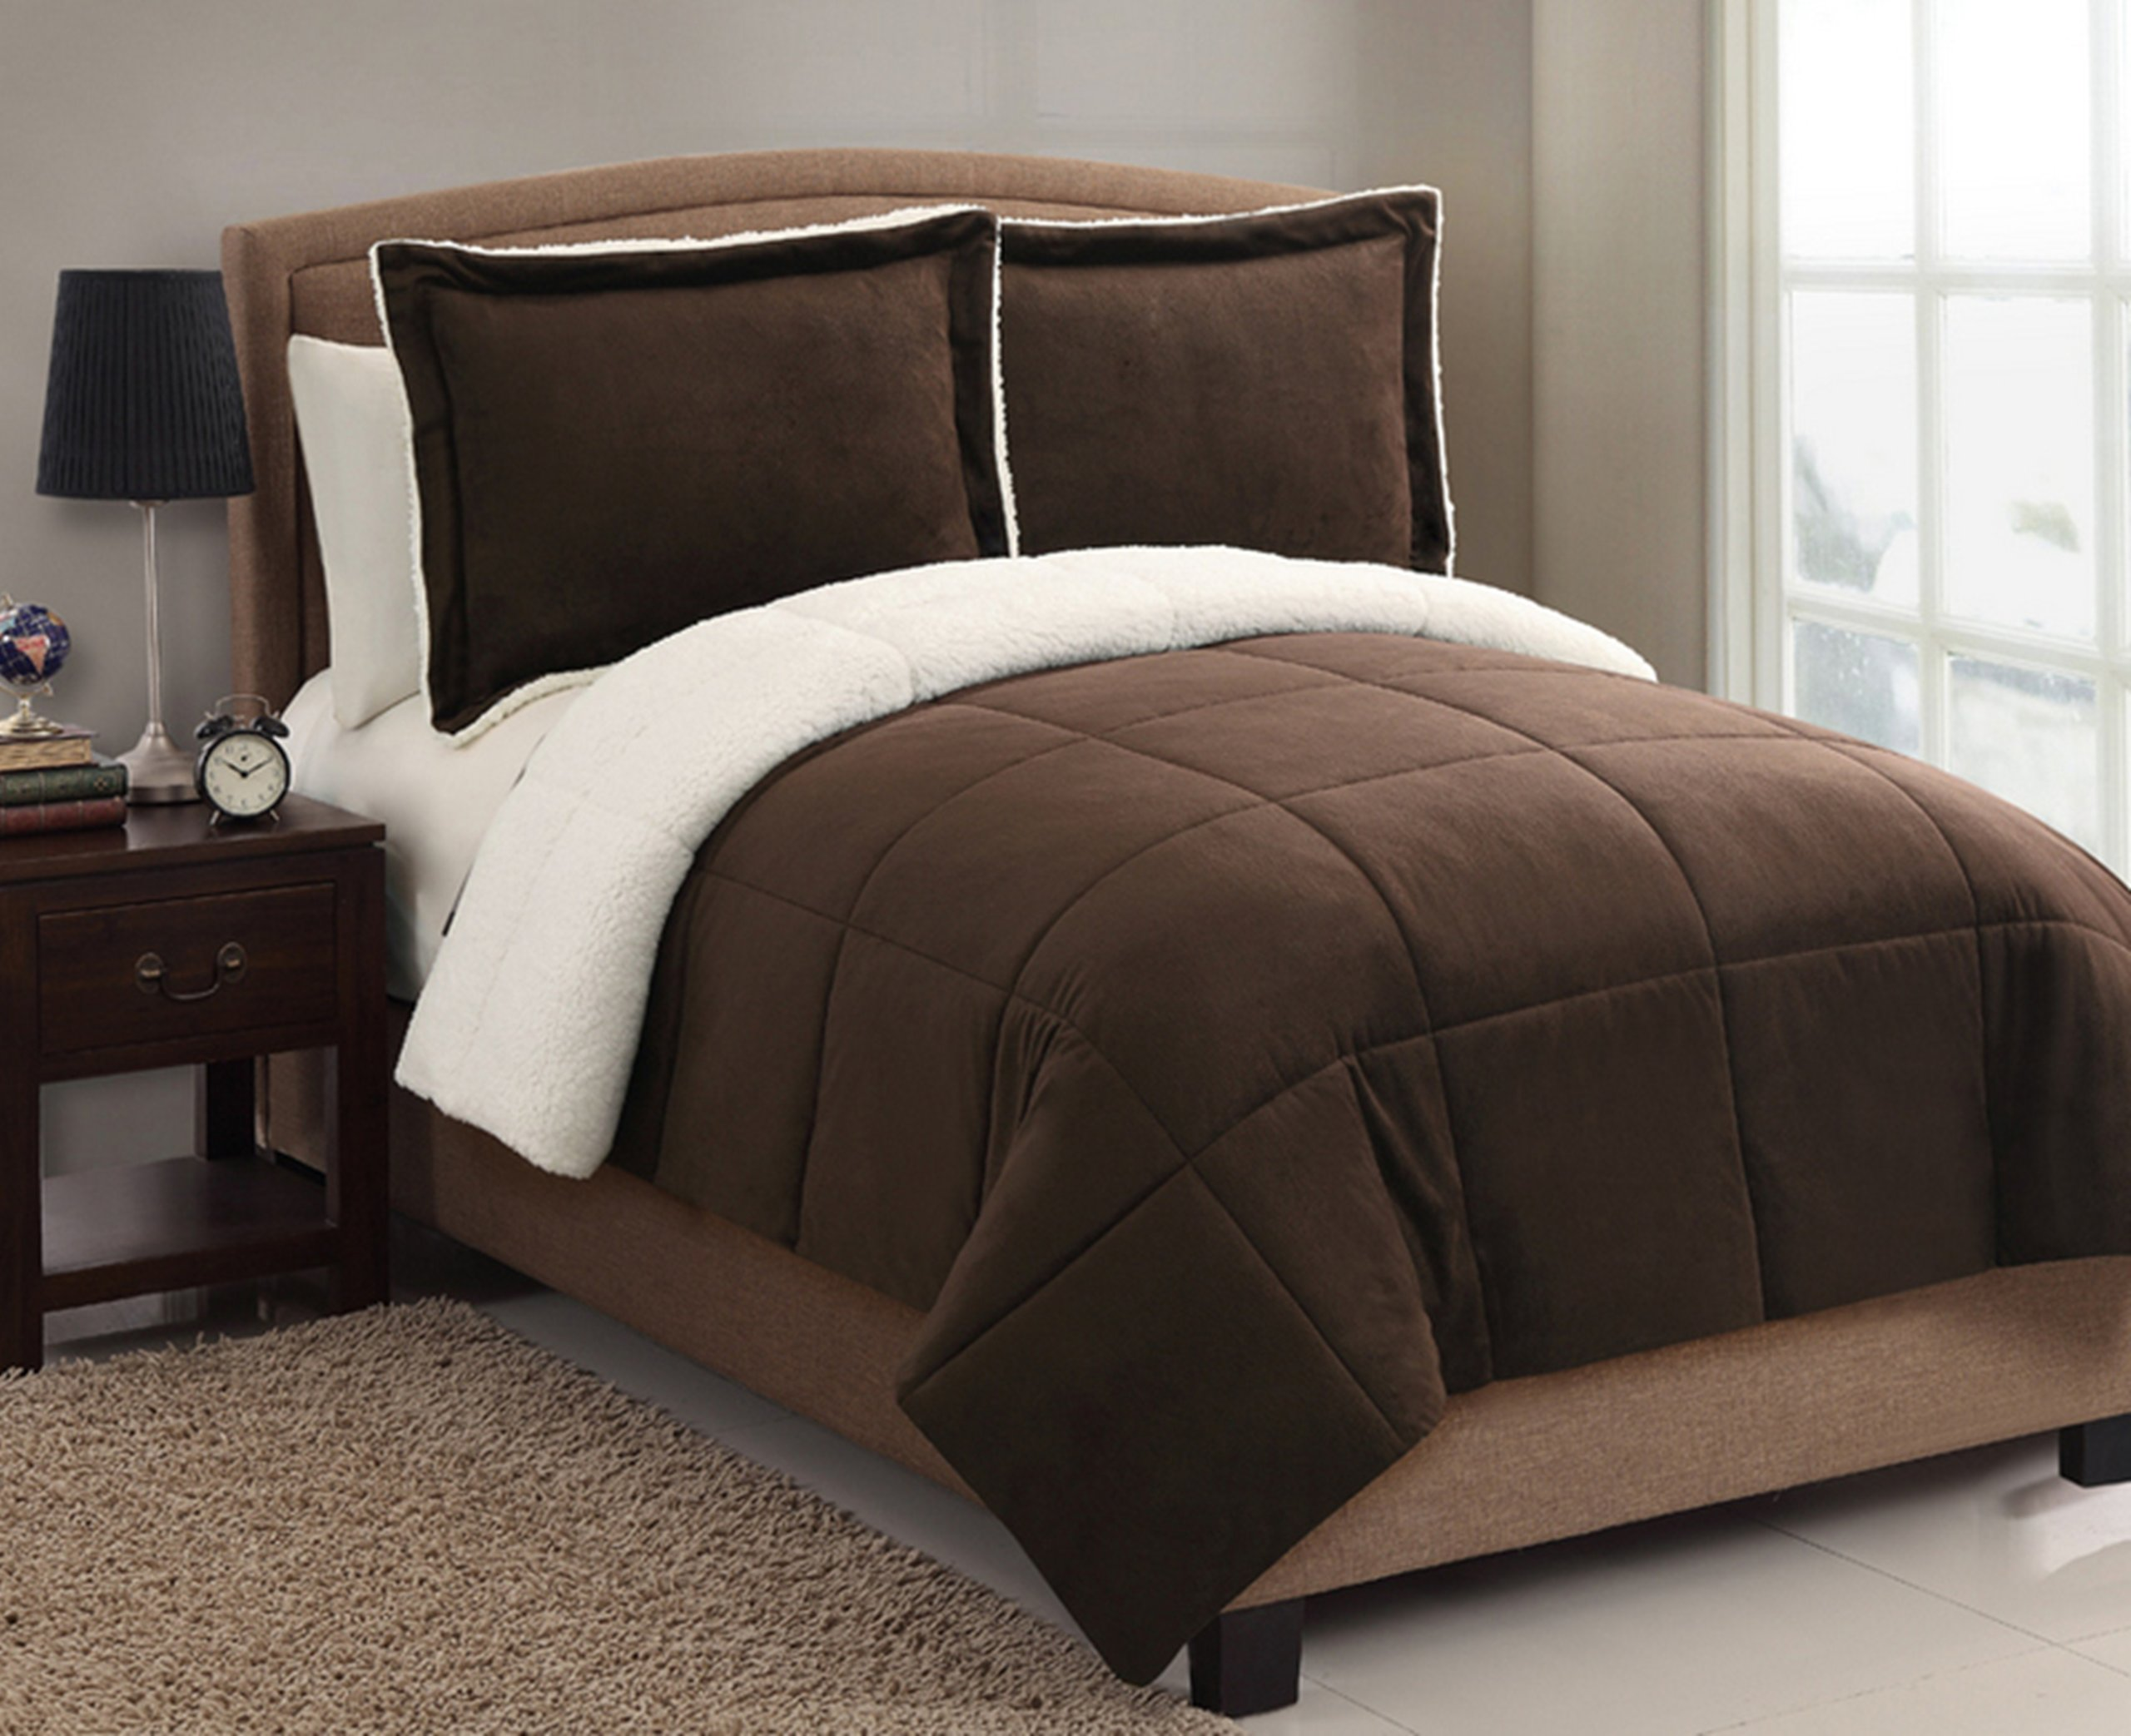 "VCNY Home Micromink coforter Set, Twin 66"" x 86"", Chocolate - Keep out the chill with the Micromink Sherpa Comforter Set, featuring plush micromink on one side and warm, sumptuously soft Sherpa on the other-the perfect blend of cozy comfort and style. Set includes one comforter and one standard shamin a super soft microfiber material that will keep you comfortable year round. Twin Comforter Bedding includes: Comforter: 66 inches x 86 inches; Standard Sham: 26 inches x 26 inches + 2 inch flange - comforter-sets, bedroom-sheets-comforters, bedroom - 81SMZcZrJBL -"